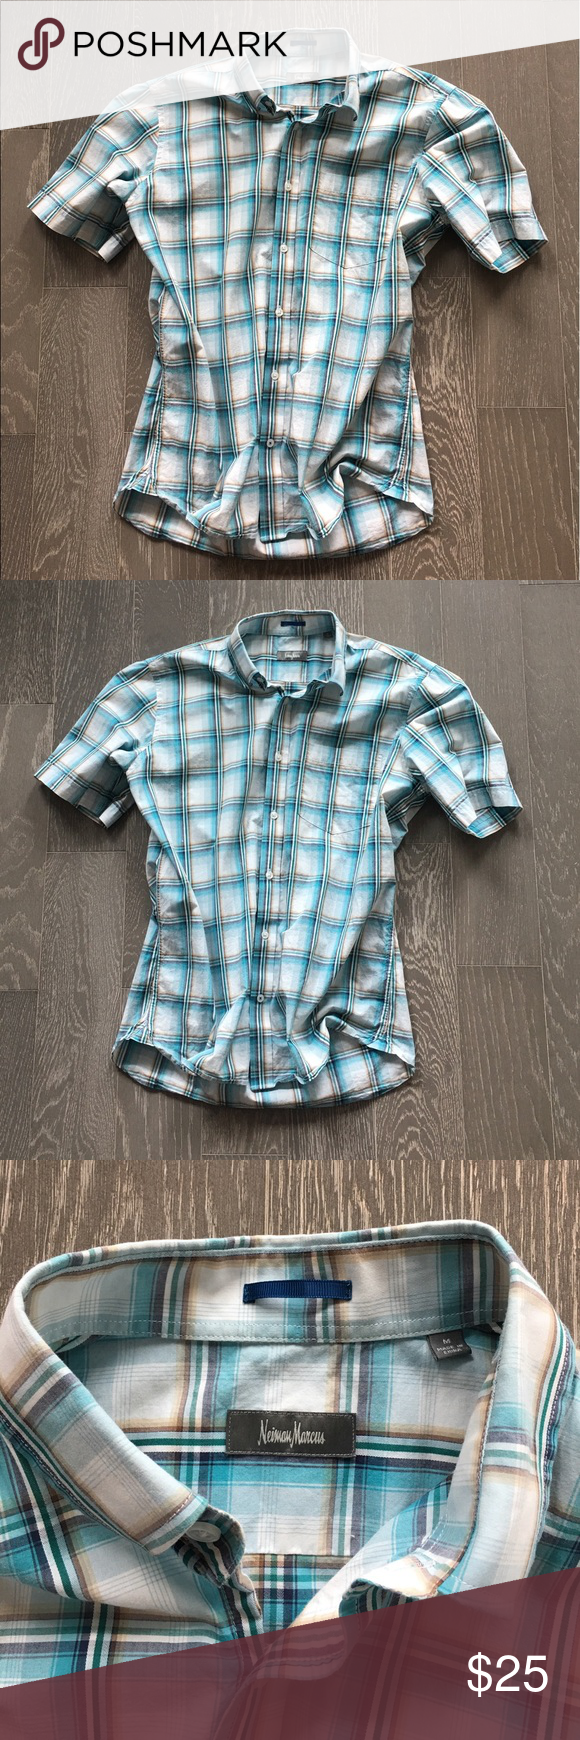 Neiman Marcus M Shirt See photos and other auctions. Thanks! Neiman Marcus Shirts Casual Button Down Shirts